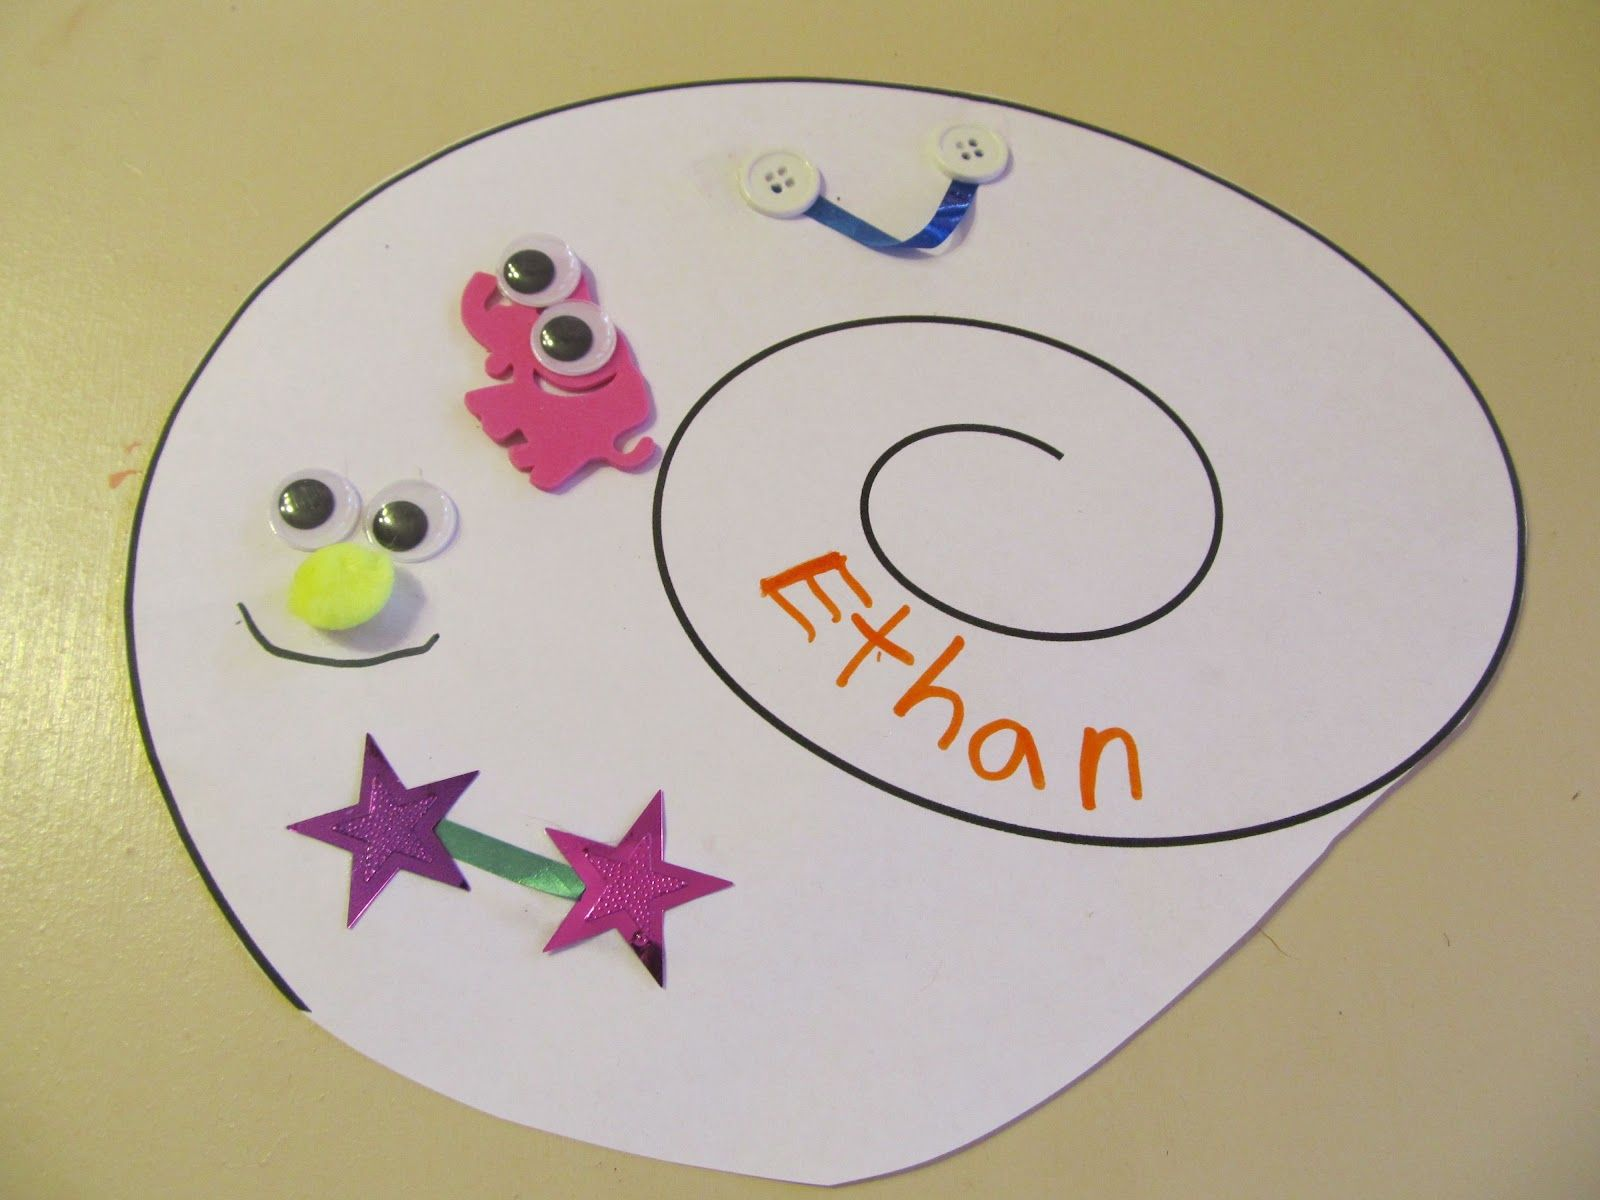 Picture Book Lessons: A Desk for Hermit Students Name Tag: A Back-to-School Craftivity for A House for Hermit Crab